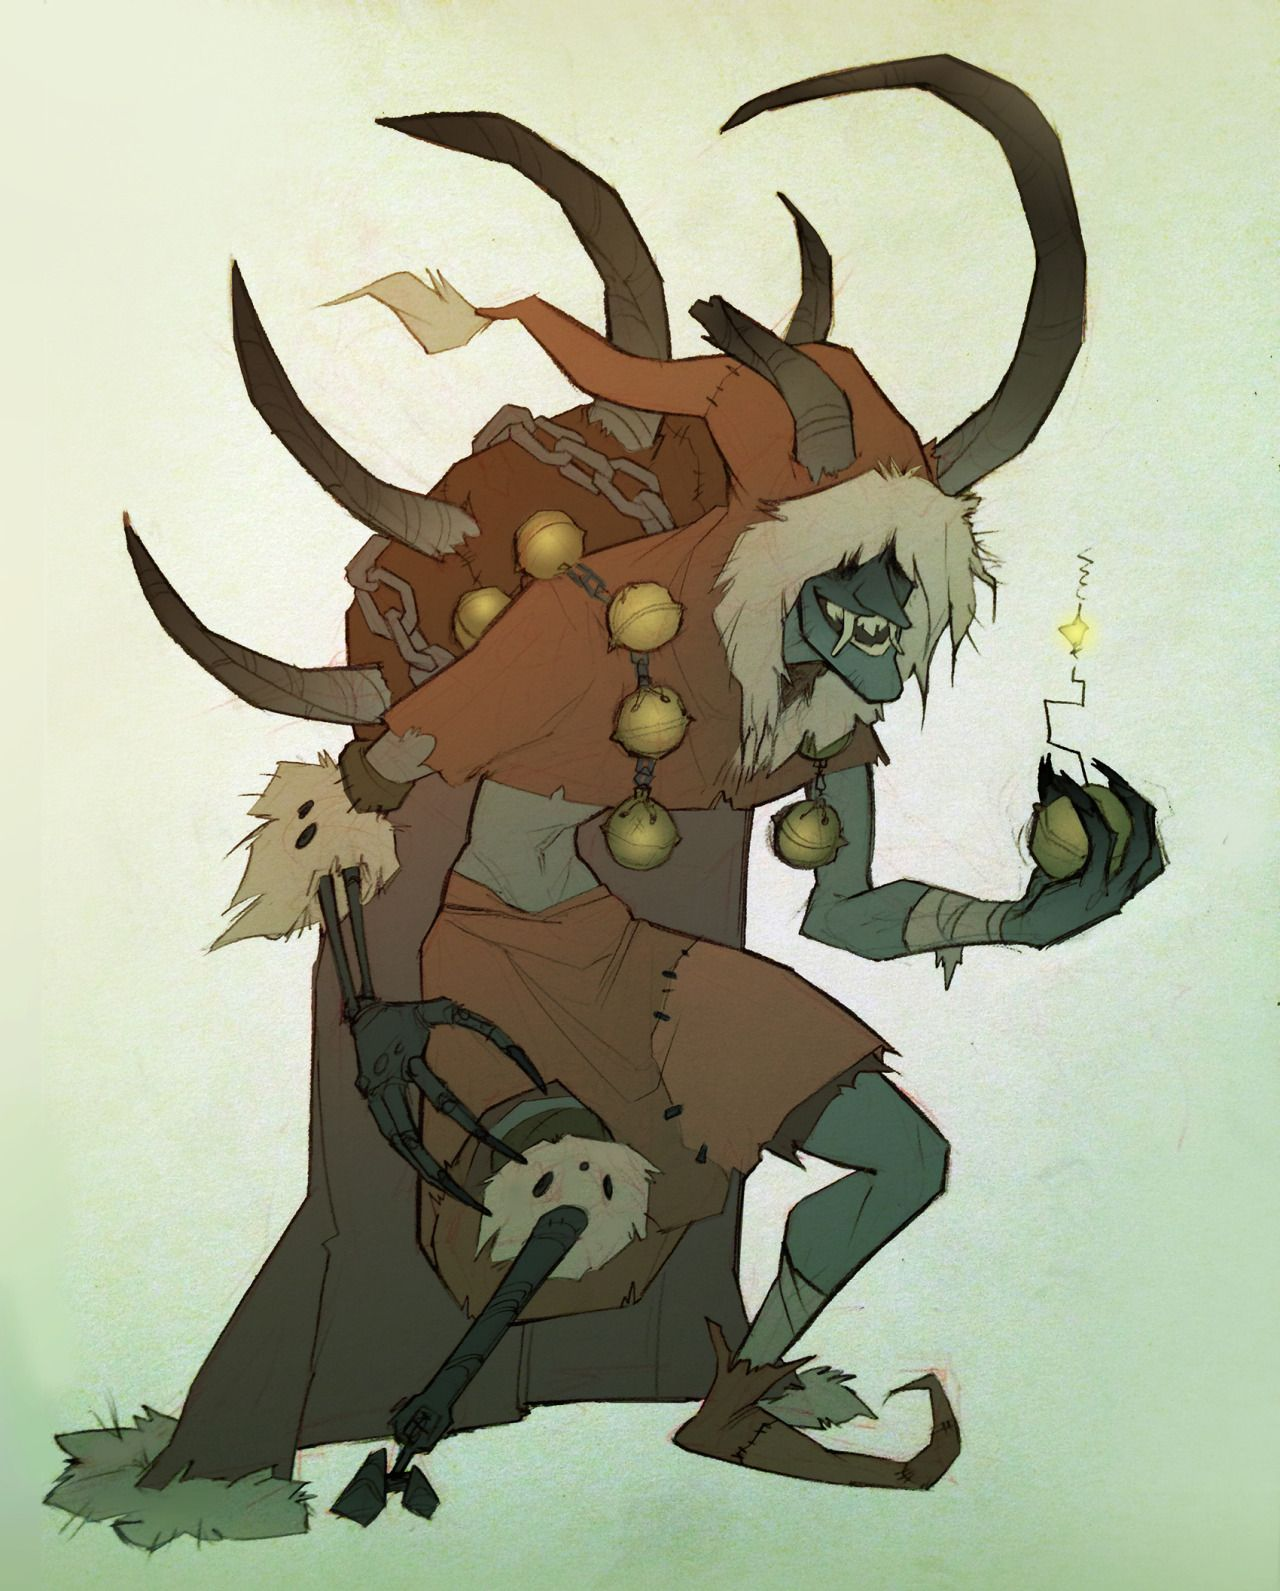 Overwatch Christmas 2019 Skins.Coconutmilkyway Junkrat Krampus Skin Krampus In 2019